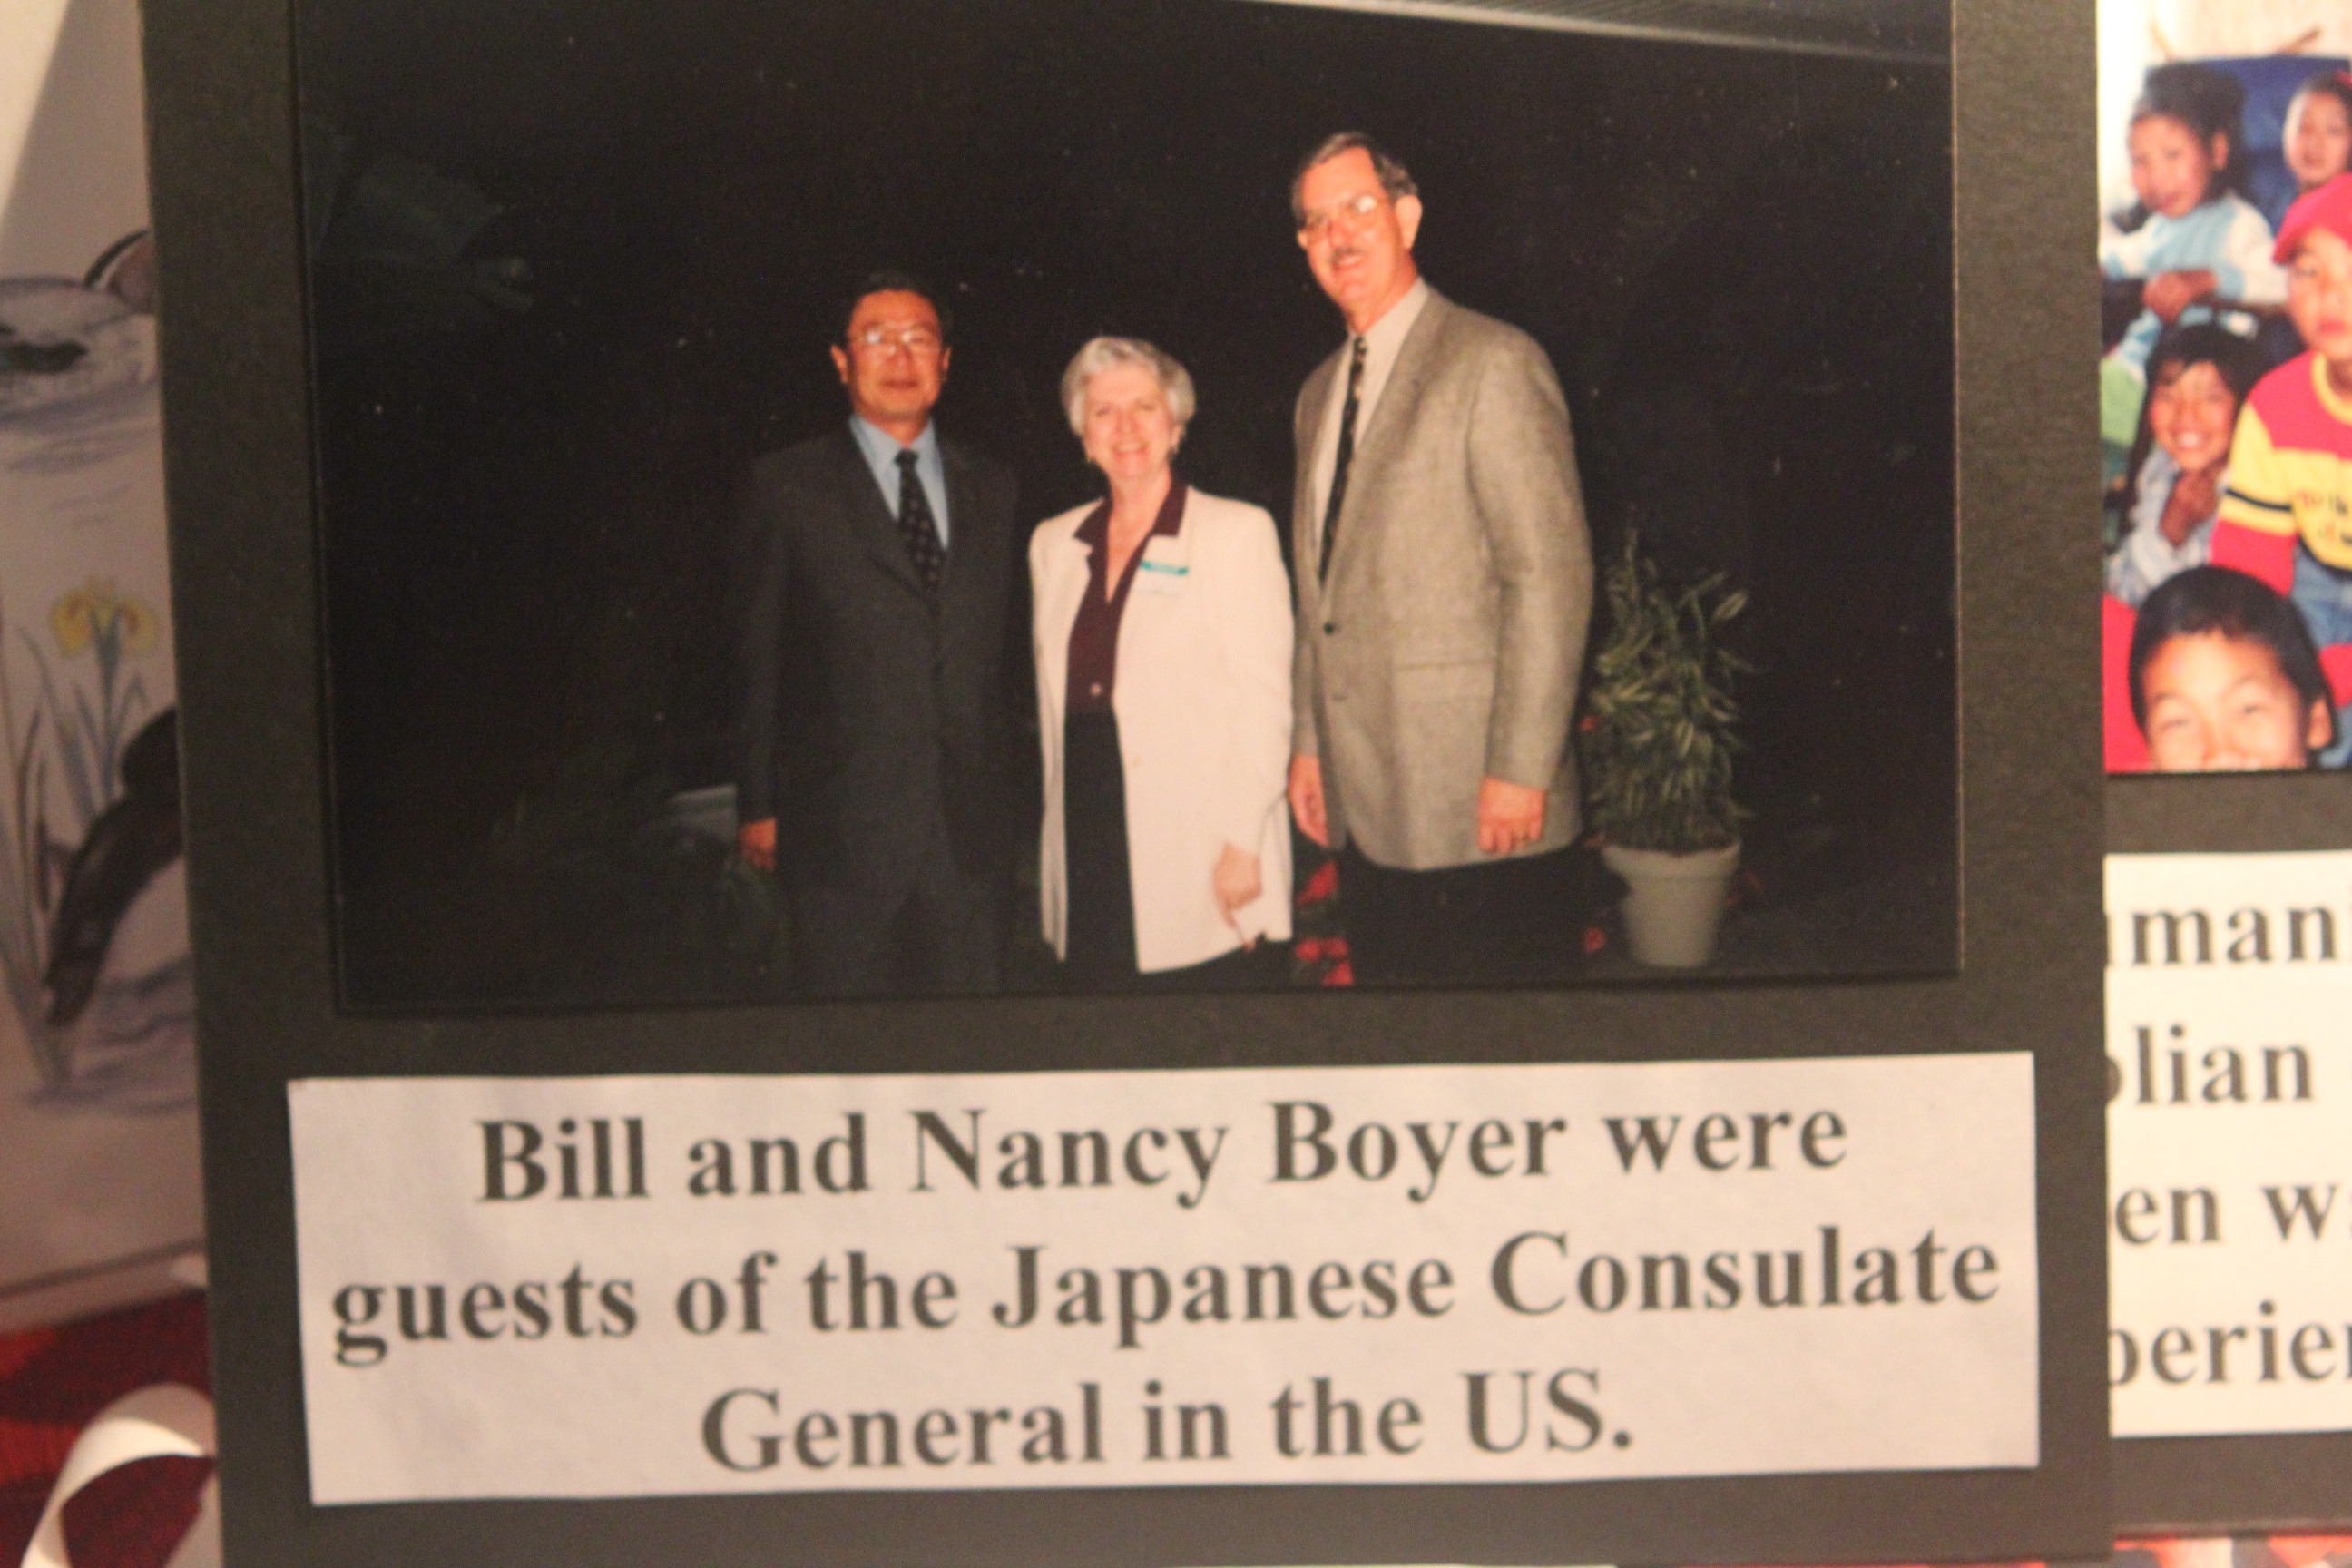 Nancy and Bill with Japanese Counselate General in Miami